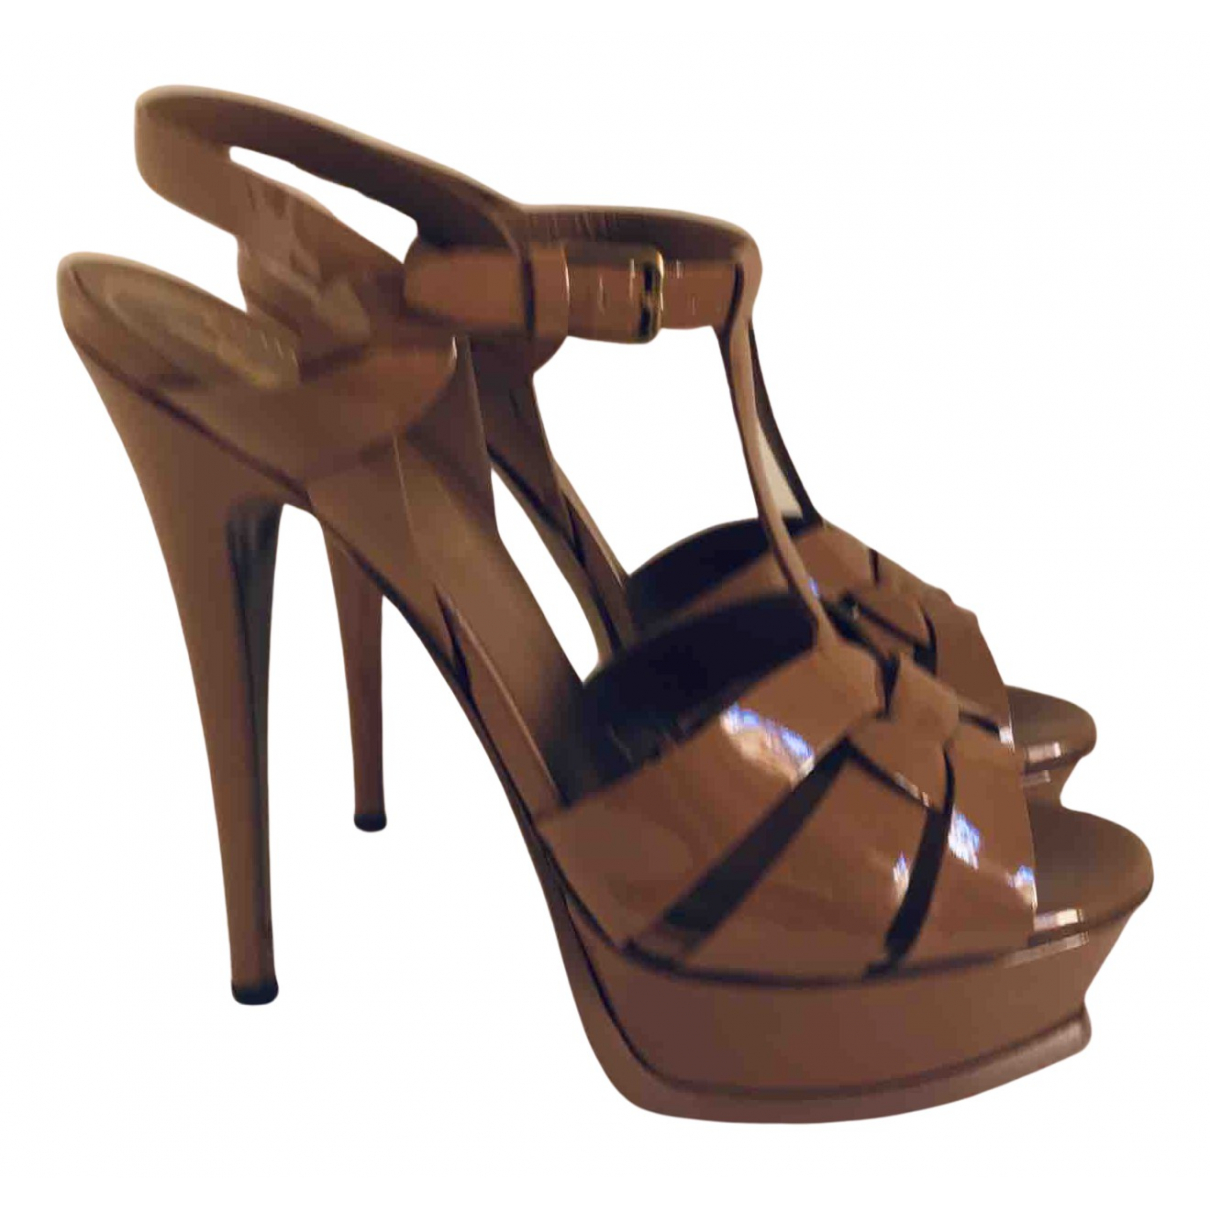 Yves Saint Laurent Tribute Beige Patent leather Sandals for Women 38 EU